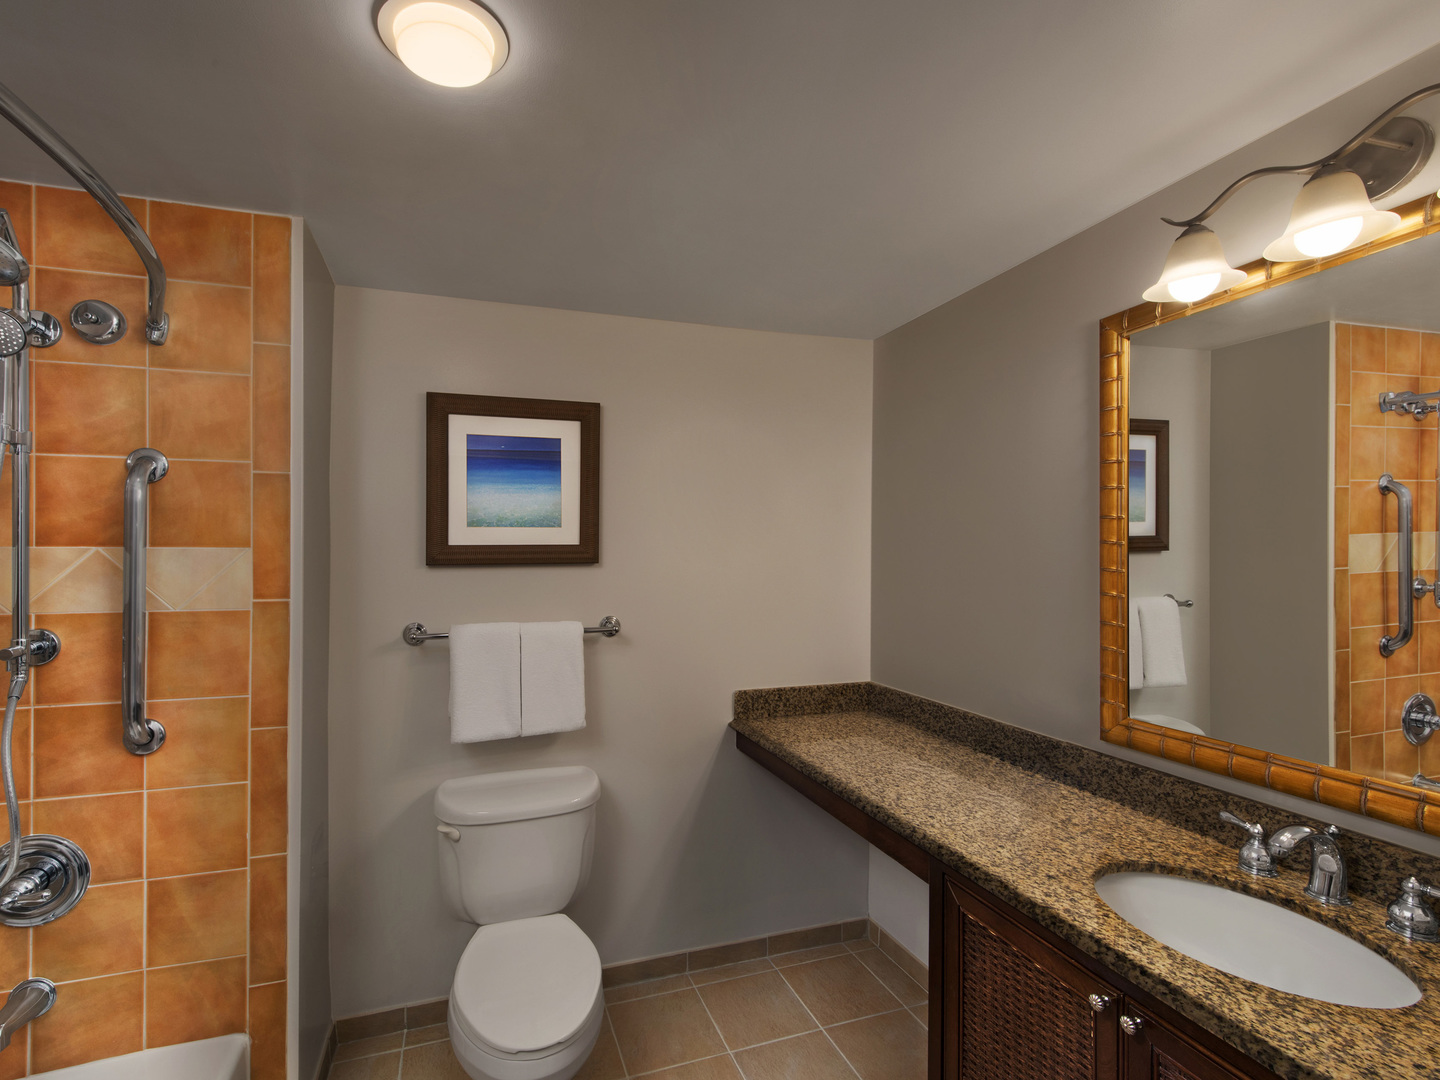 Marriott's SurfWatch<span class='trademark'>®</span> Villa 3rd Bathroom. Marriott's SurfWatch<span class='trademark'>®</span> is located in Hilton Head Island, South Carolina United States.